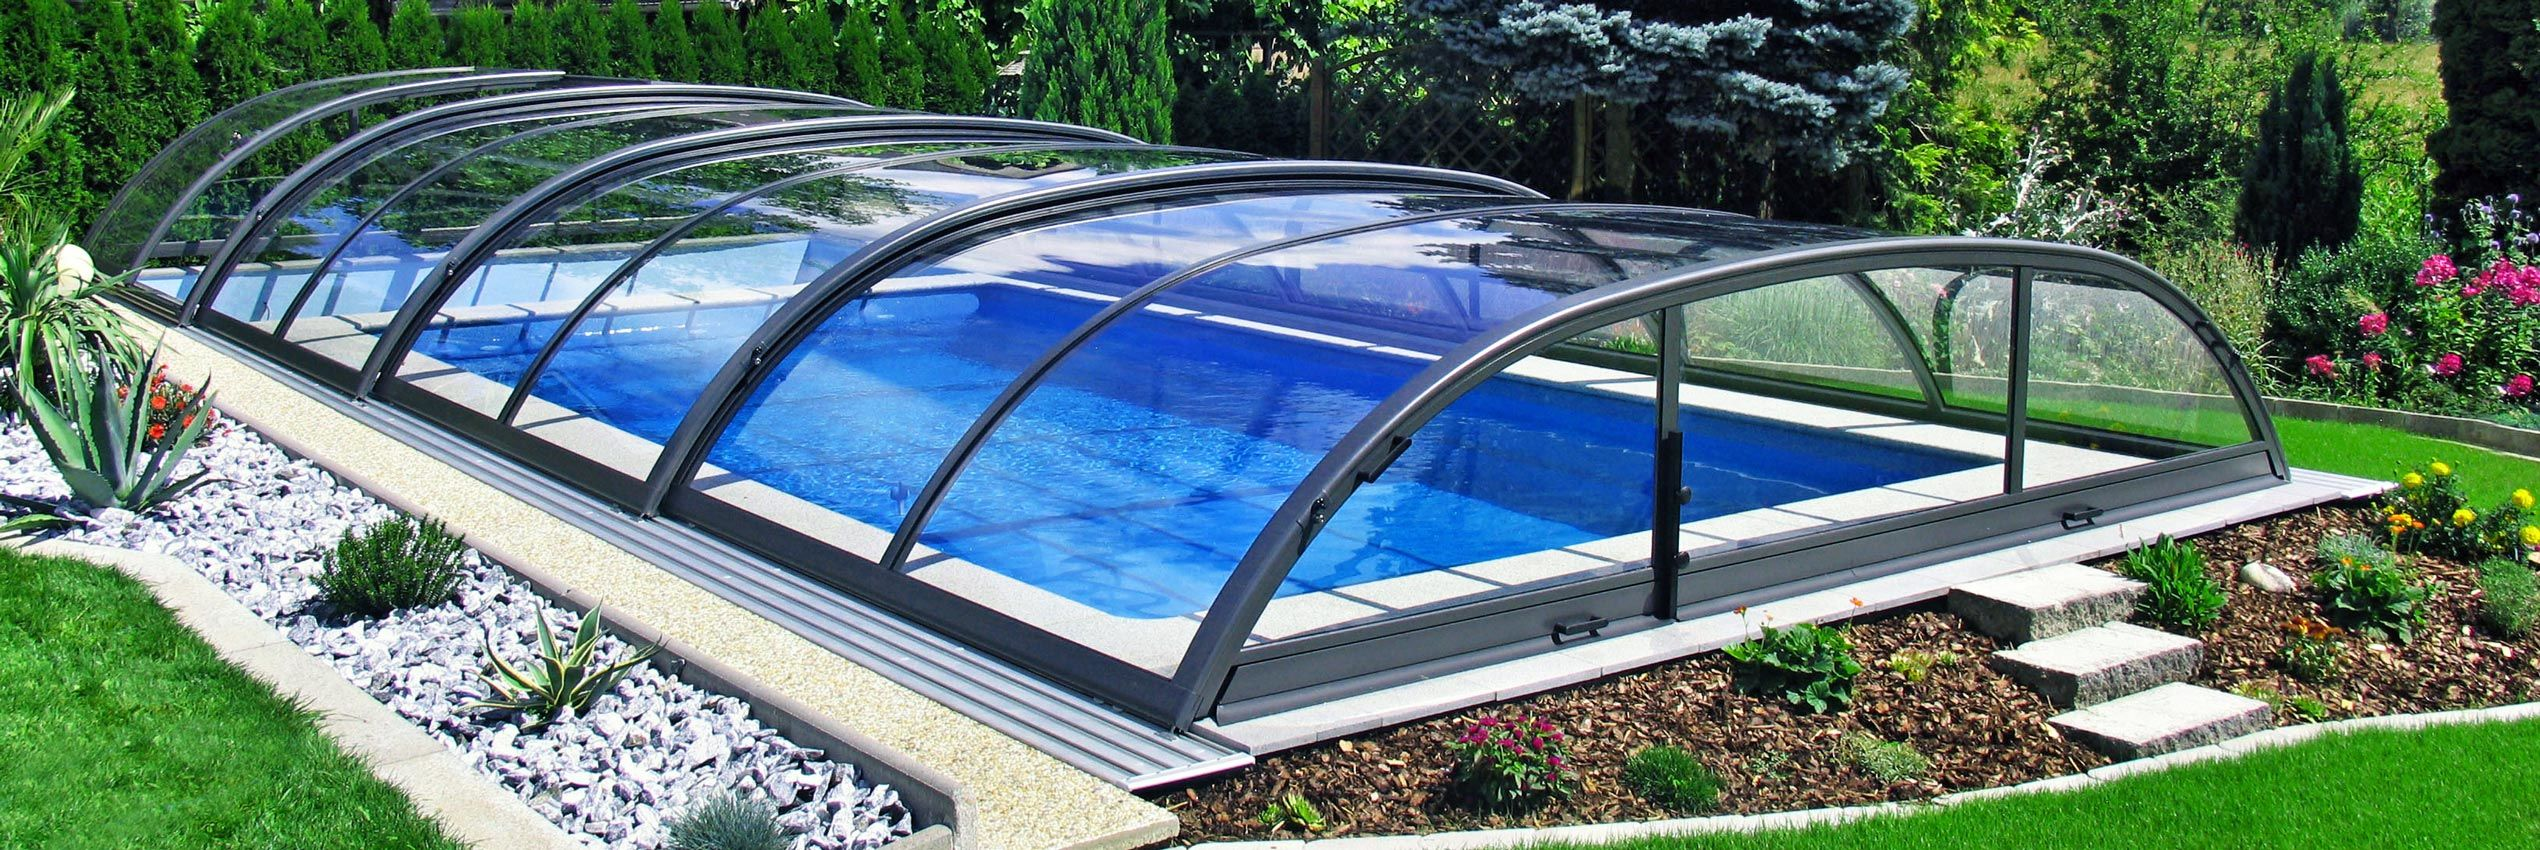 Swimming pool enclosure Elegant NEO